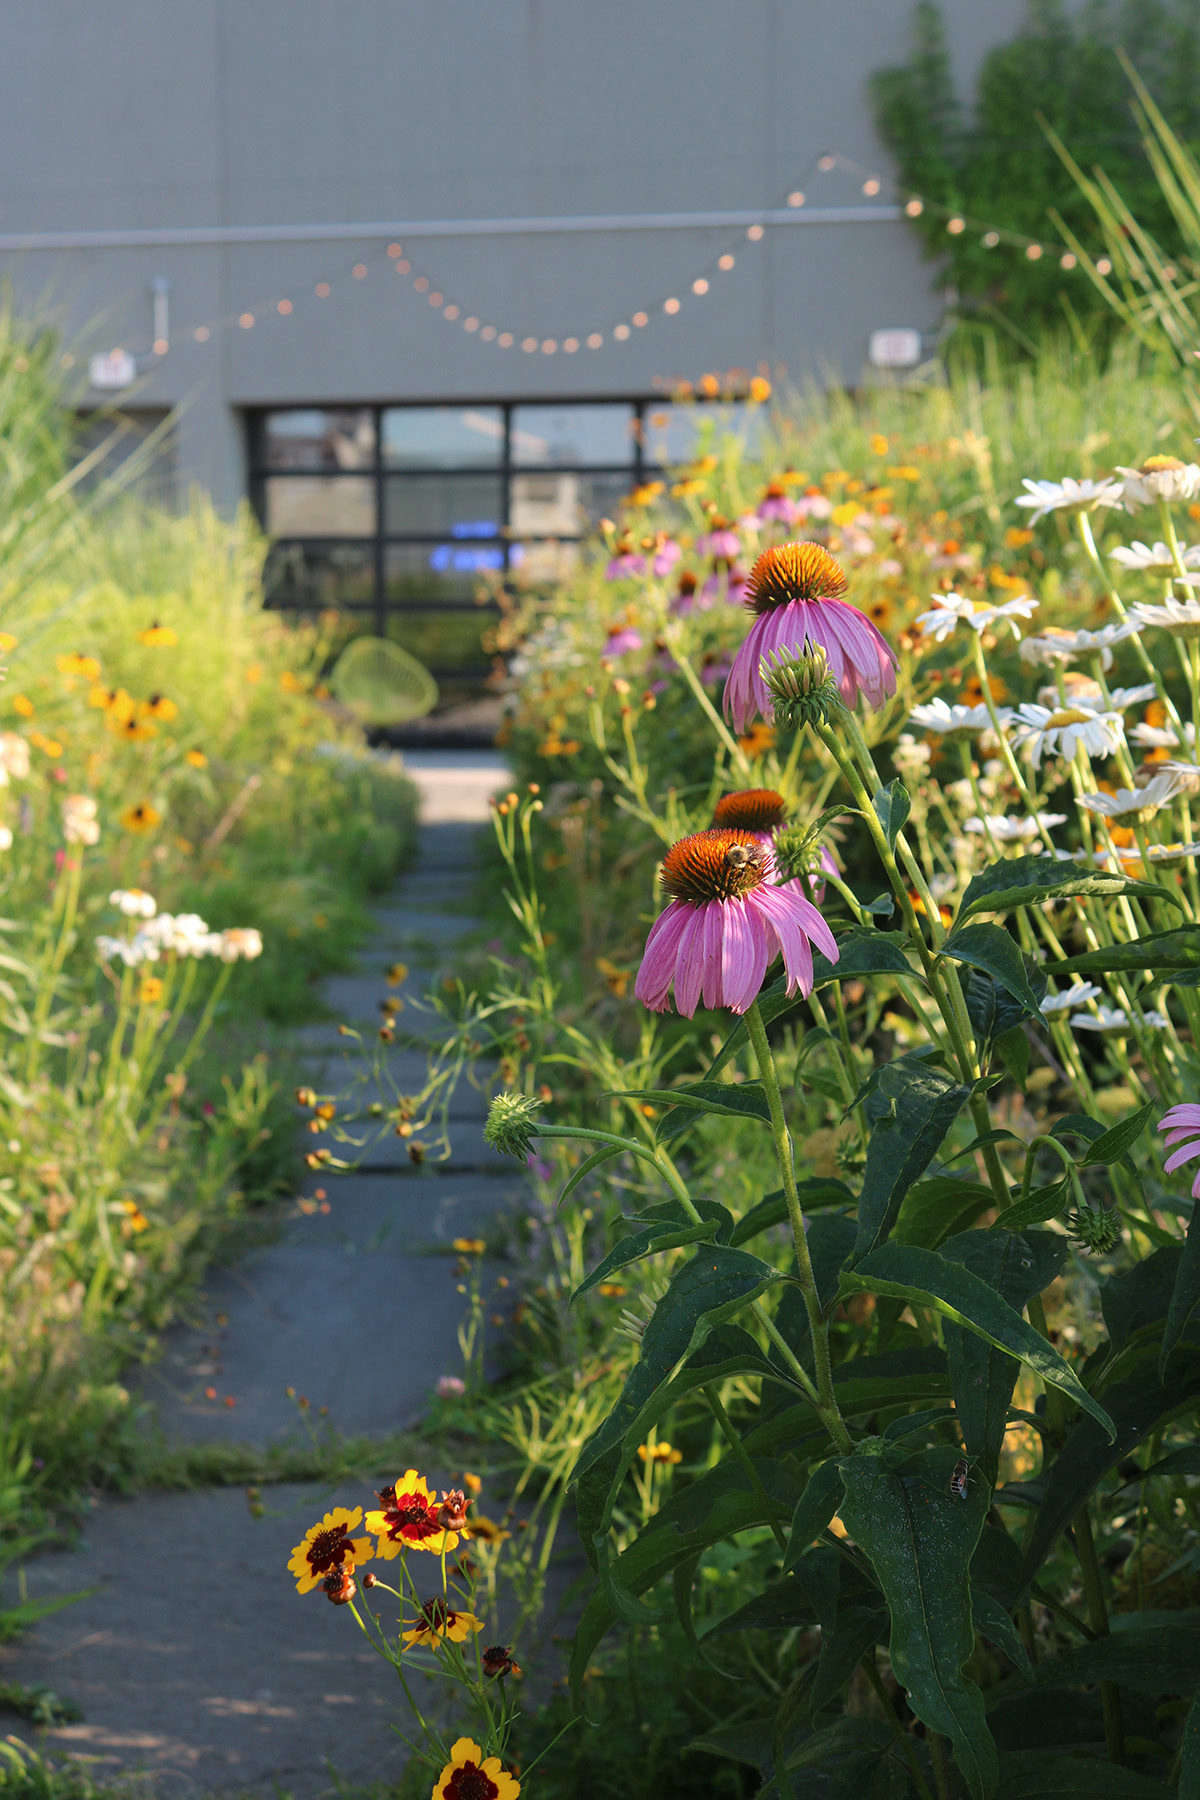 Just eight inches of planting depth (using green roof media designed by Rooflite) supports this intensive and thriving plant community. Irrigation is used, but kept to a minimum.